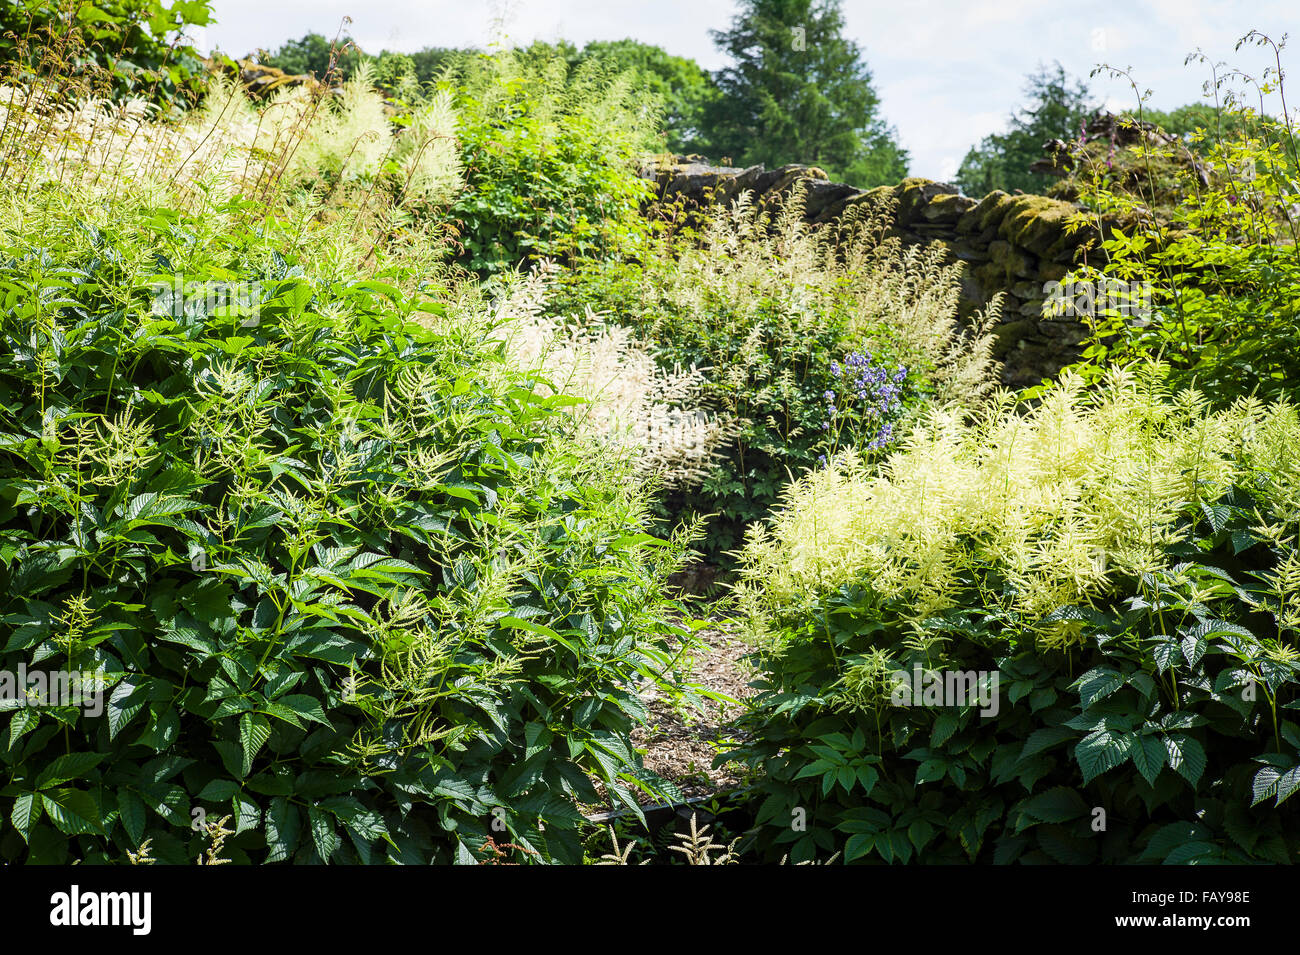 Collection of Aruncus plants in flower  in Cumbria - Stock Image